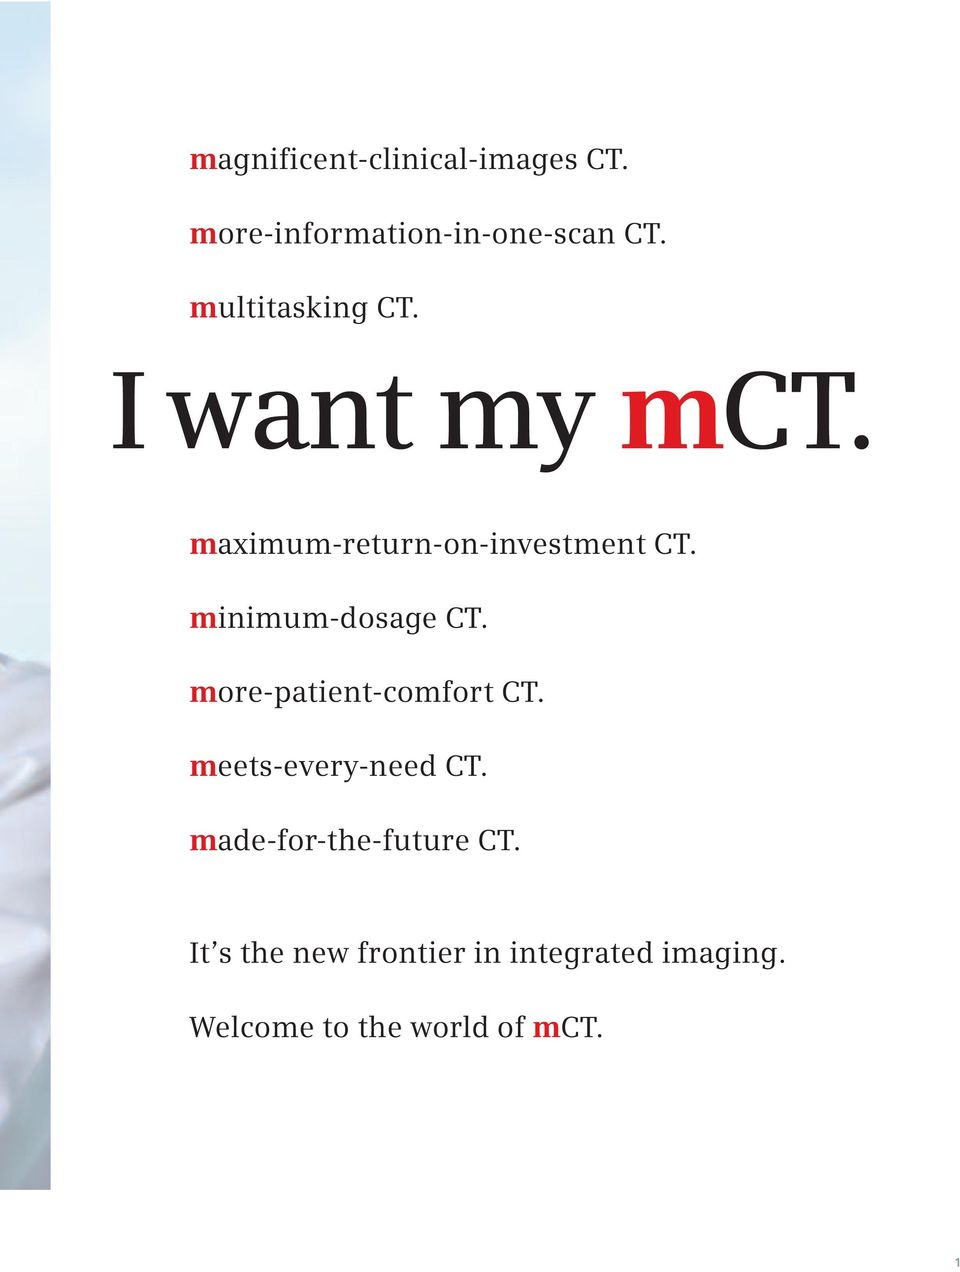 minimum-dosage CT. more-patient-comfort CT. meets-every-need CT.